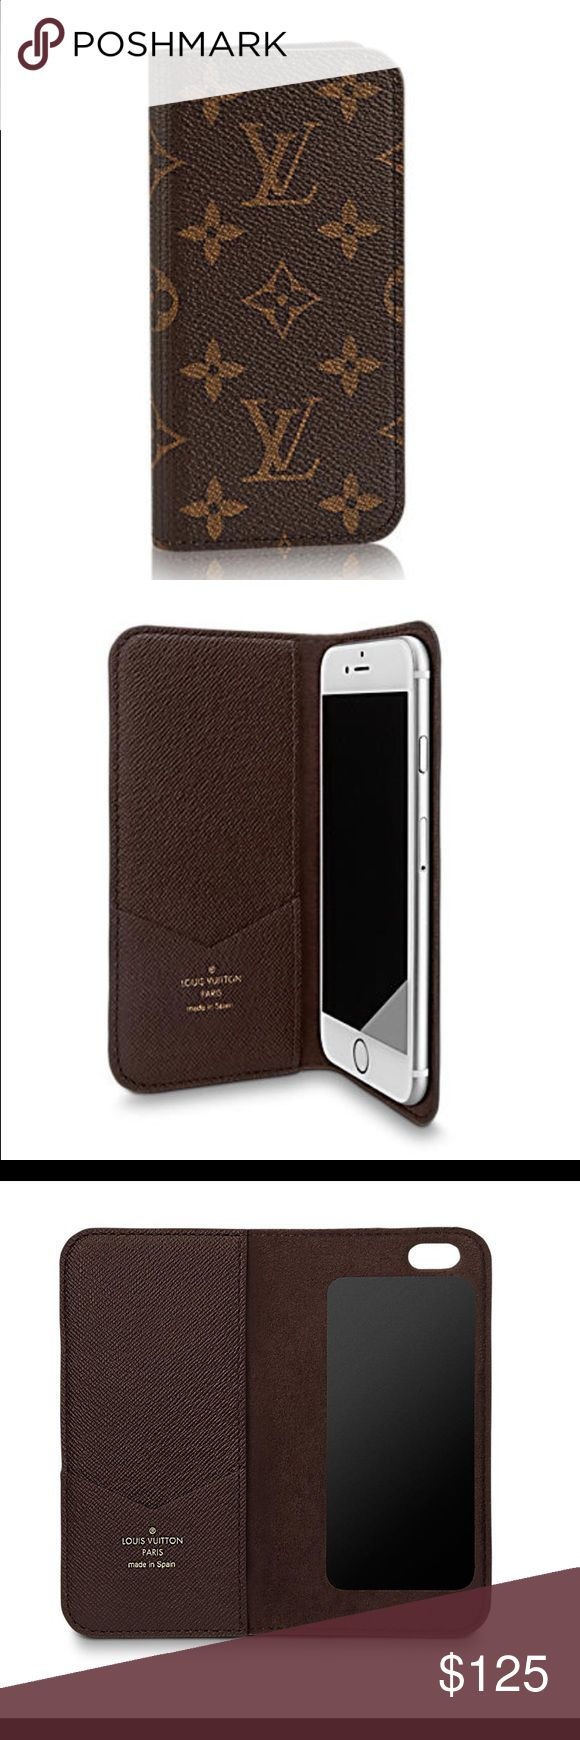 Louis Vuitton iPhone 6/6s Folio Like new. Beautiful LV case with original box and cloth bag. Was a gift and I got an iPhone 6 Plus shortly after receiving it. Loved the convenience of keeping credit cards & cash in it. Louis Vuitton Accessories Phone Cases